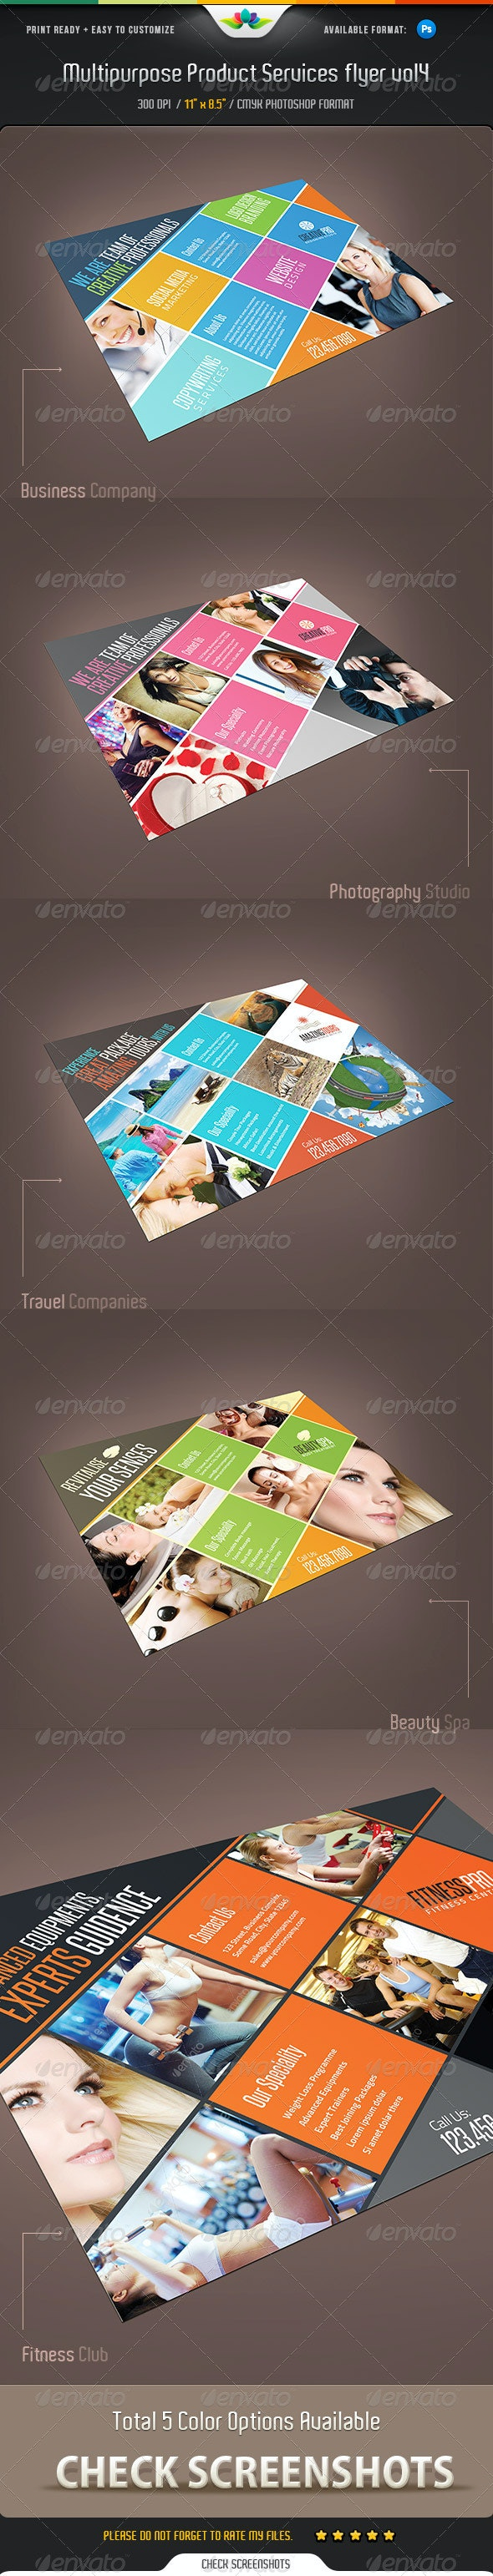 Multipurpose Product / Services Flyer Vol 4  - Corporate Flyers